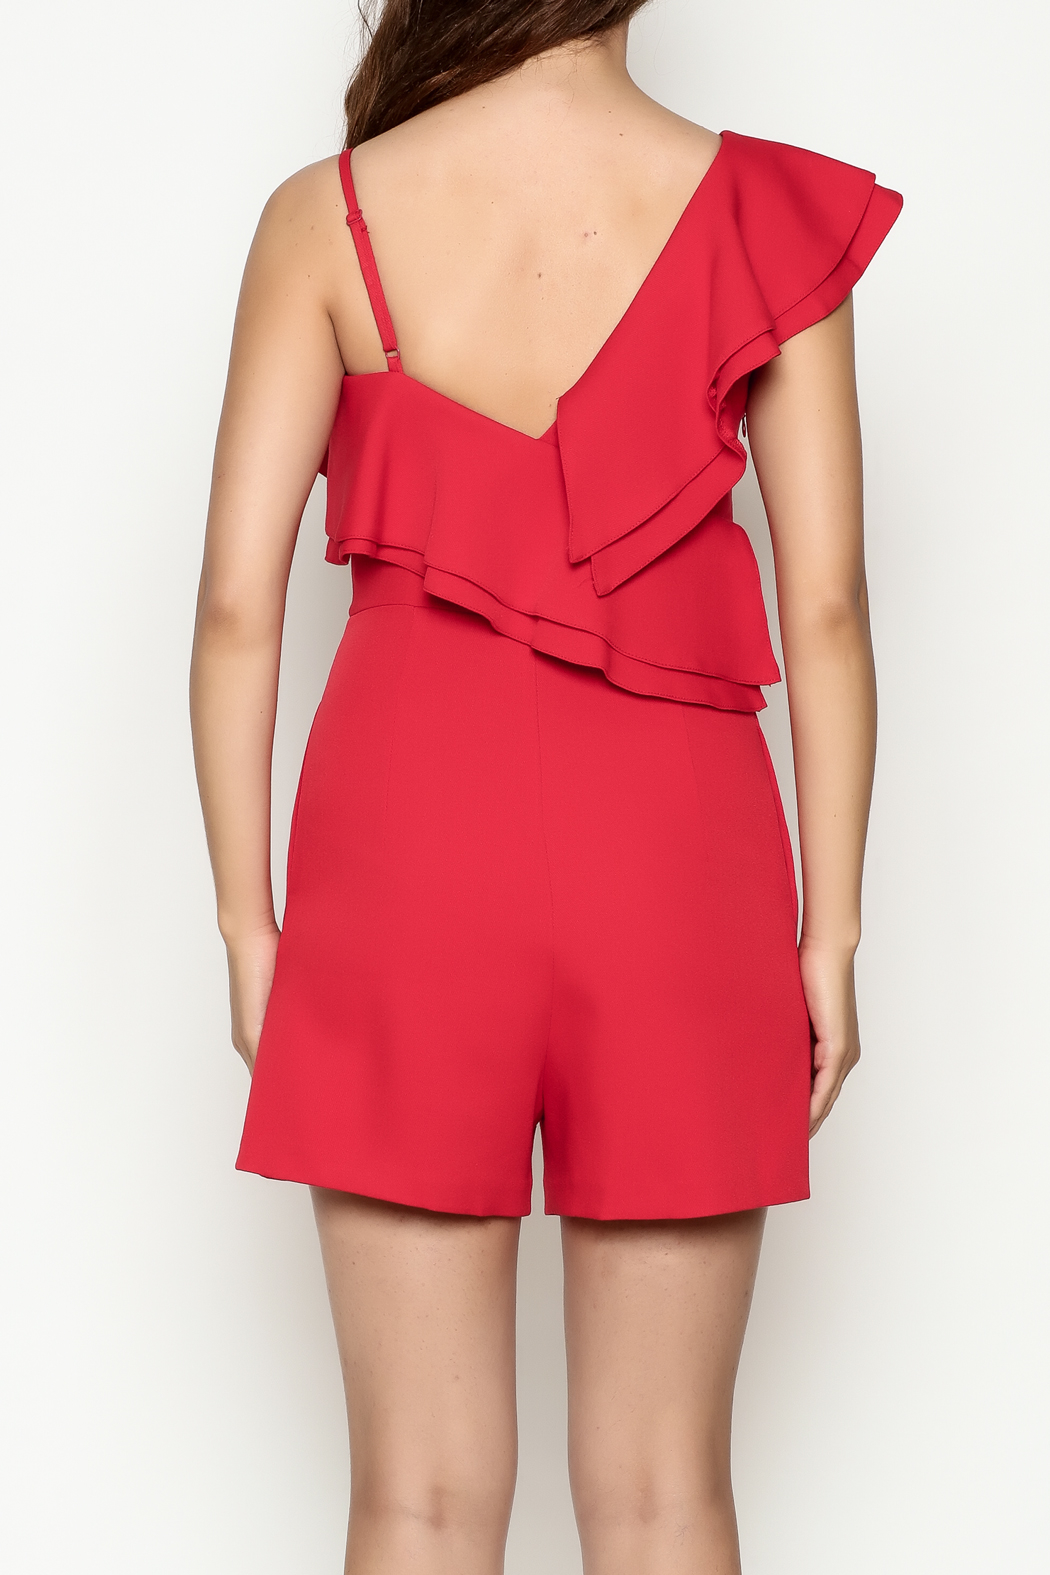 C. Luce Red Ruffle Romper - Back Cropped Image